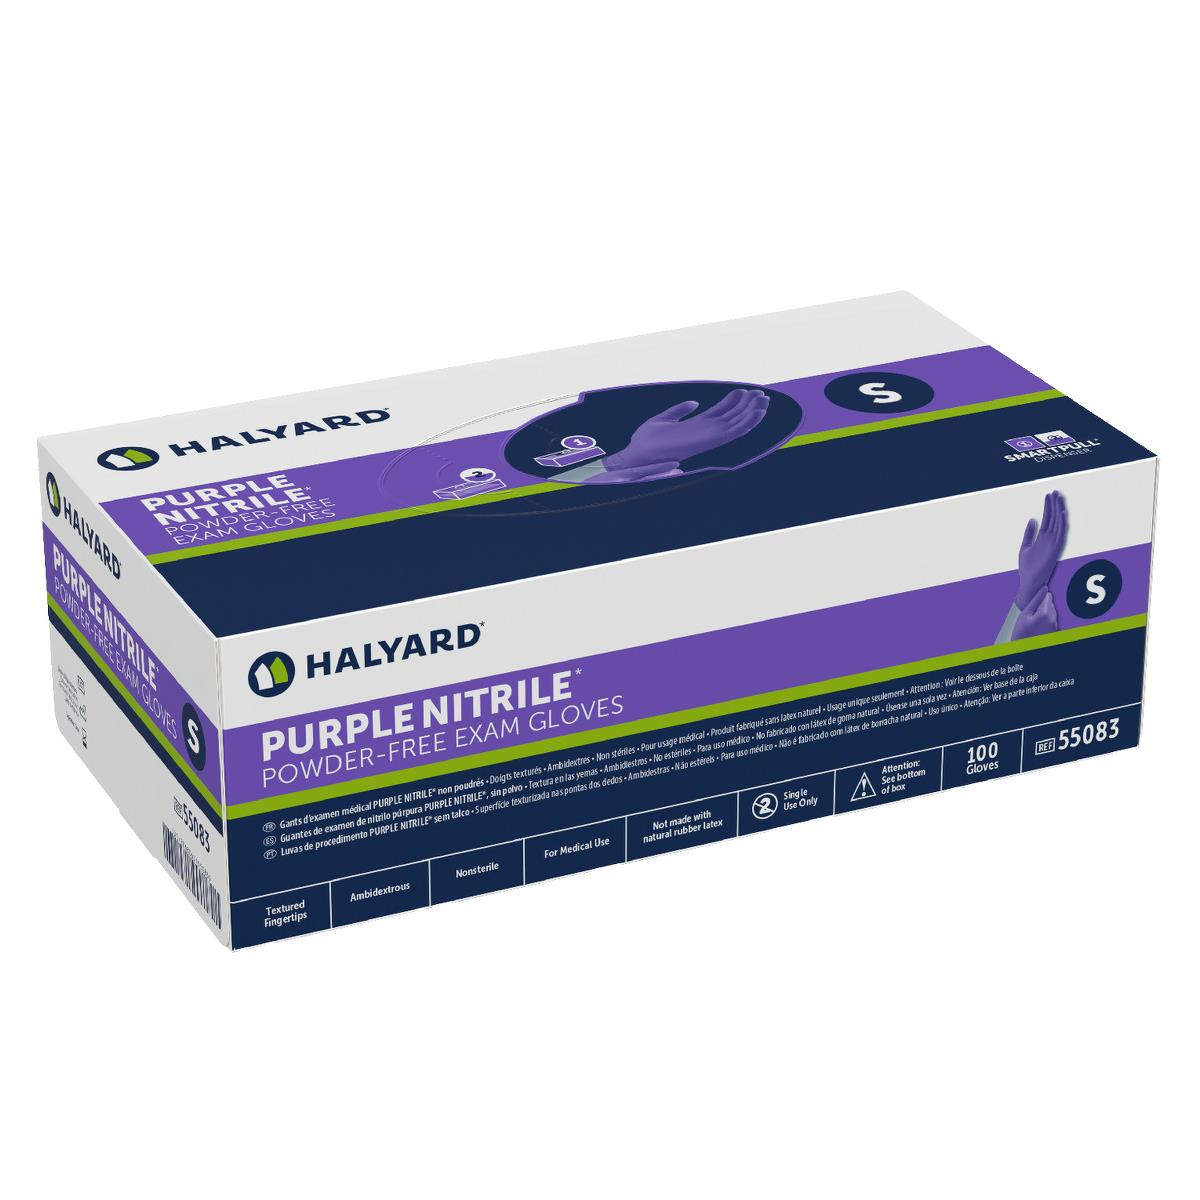 Non-Sterile Purple Nitrile Exam Gloves, Box of 100